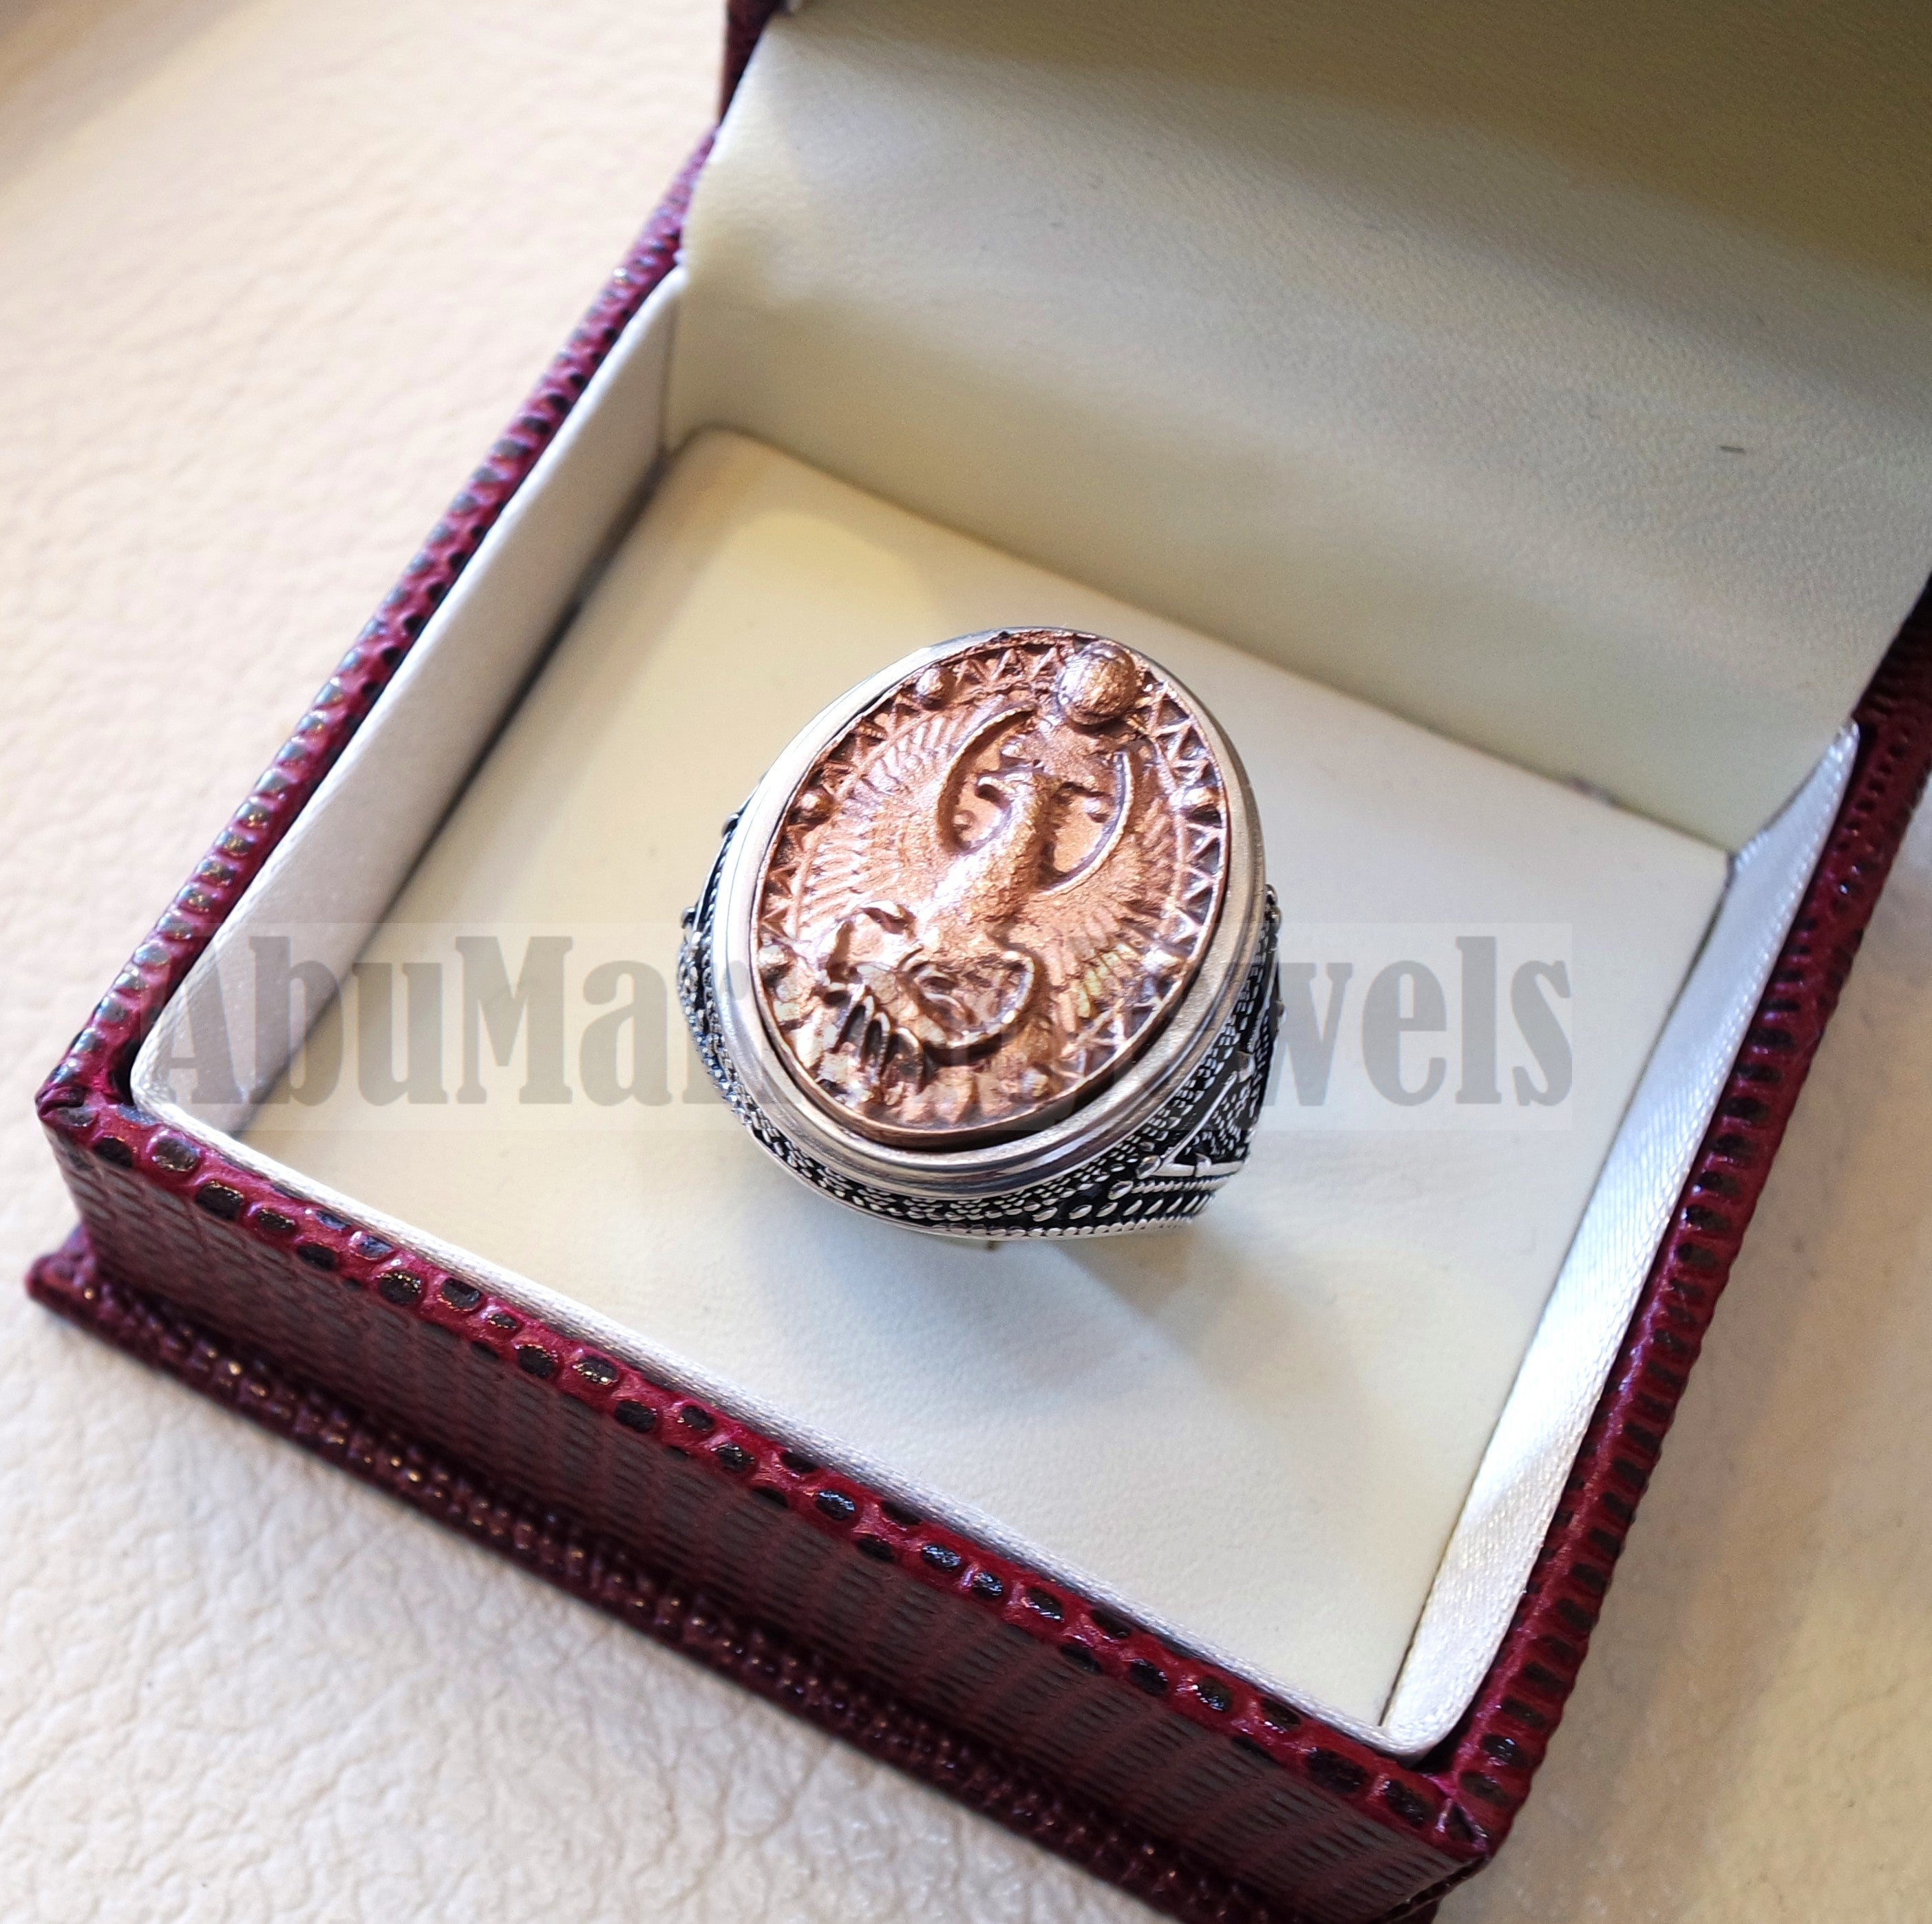 Horoscopes zodiac sign Scorpio sterling silver 925 and antique bronze huge men ring all sizes men jewelry gift that bring luck fast shipping